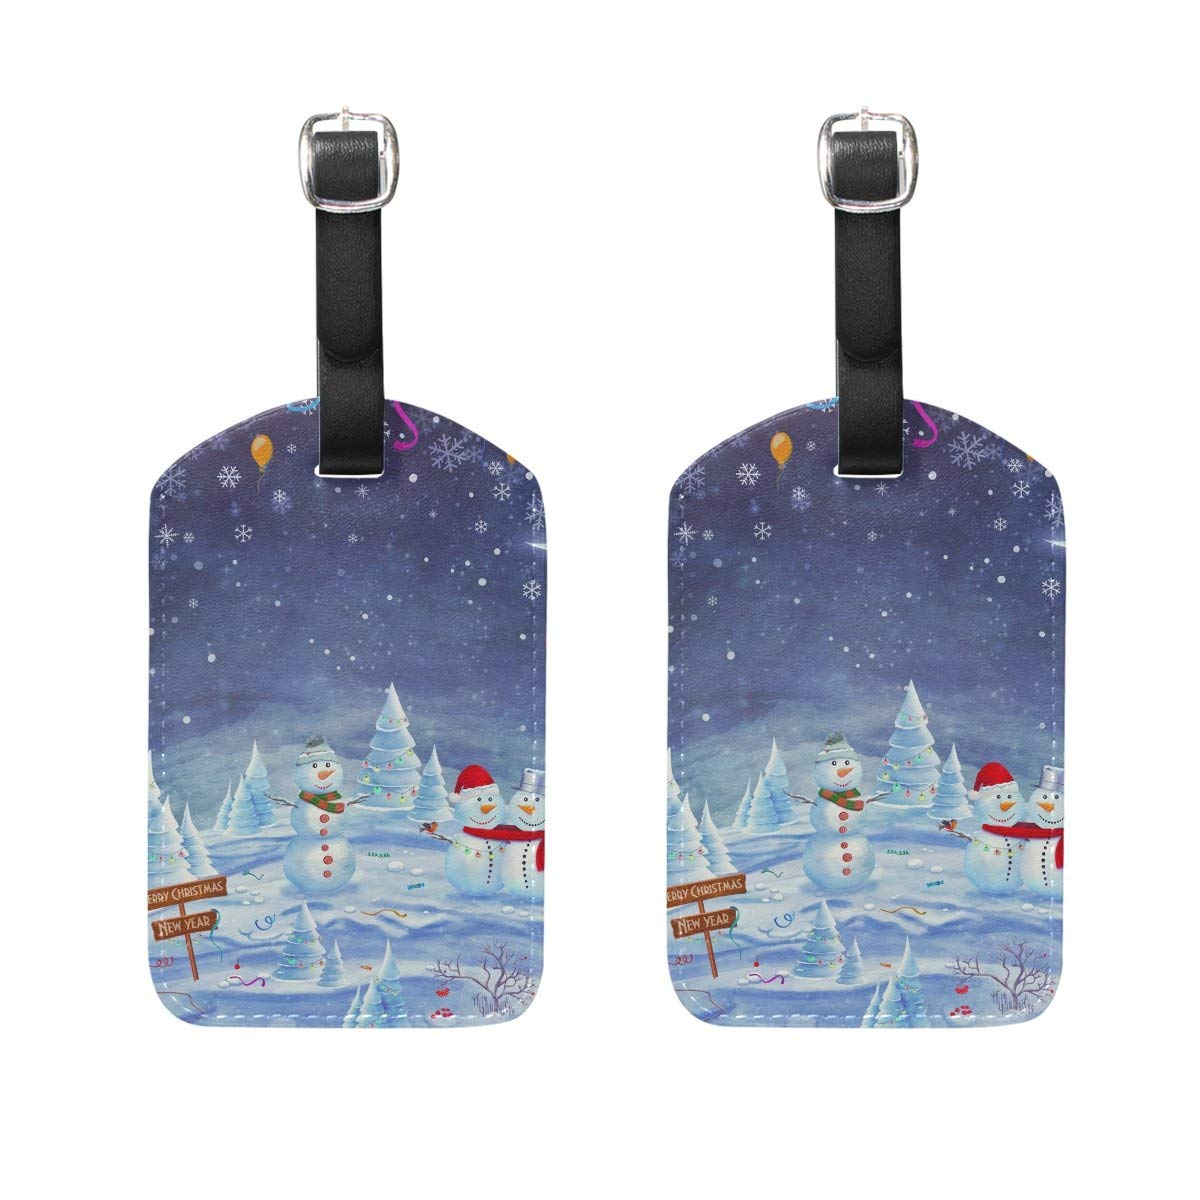 GTdgstdsc Collection Of Christmas Labels Pattern Luggage Tags Travel Labels Tag Name Card Holder for Baggage